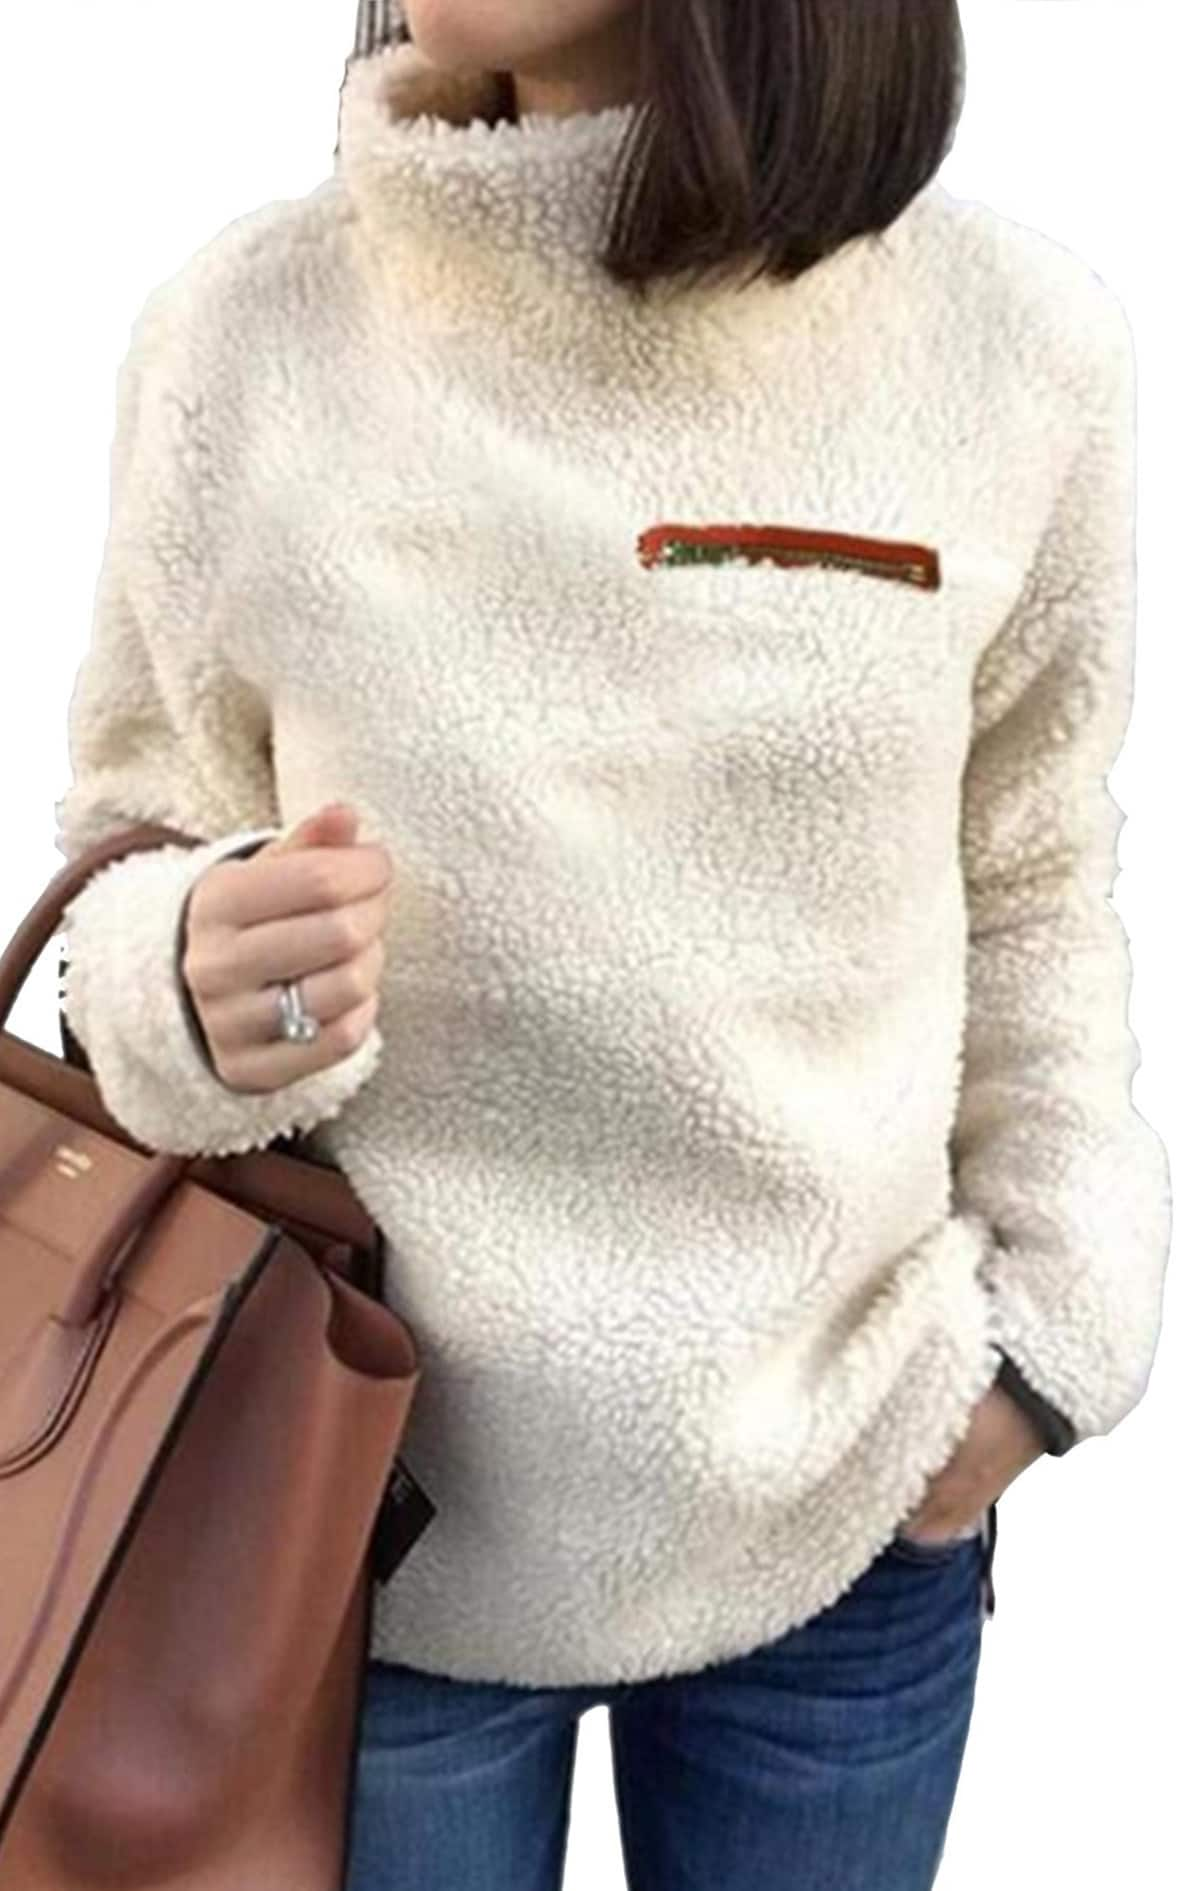 Women's Sherpa Fuzzy Warm Top $17.49